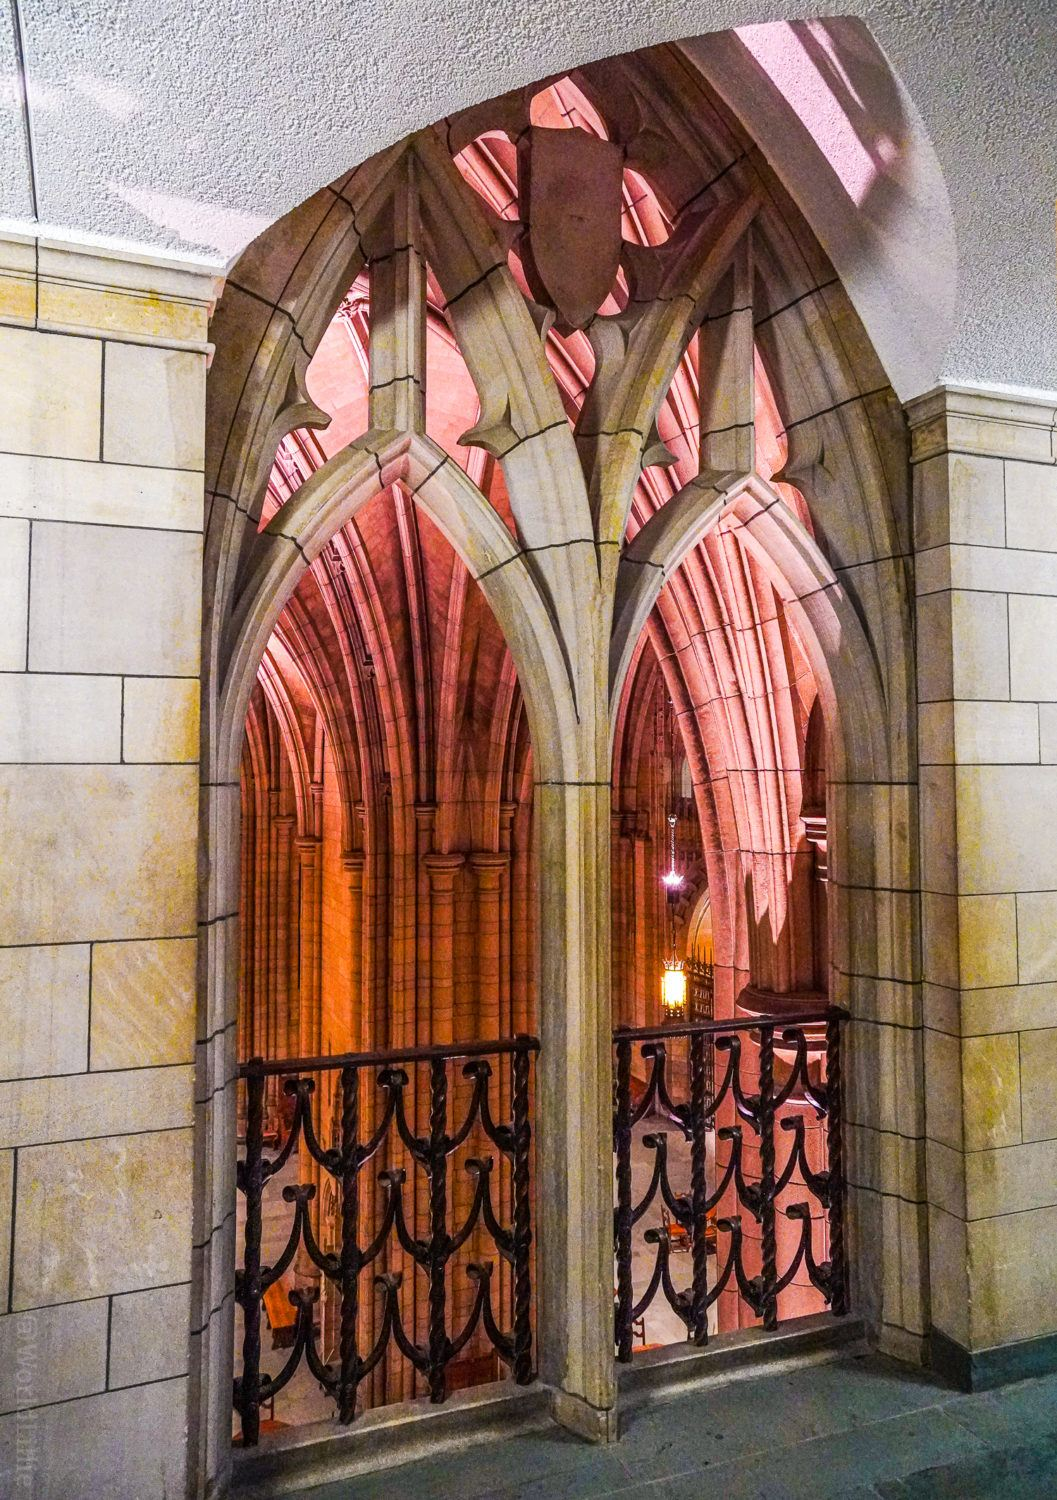 One of the upper balconies in the Cathedral of Learning.